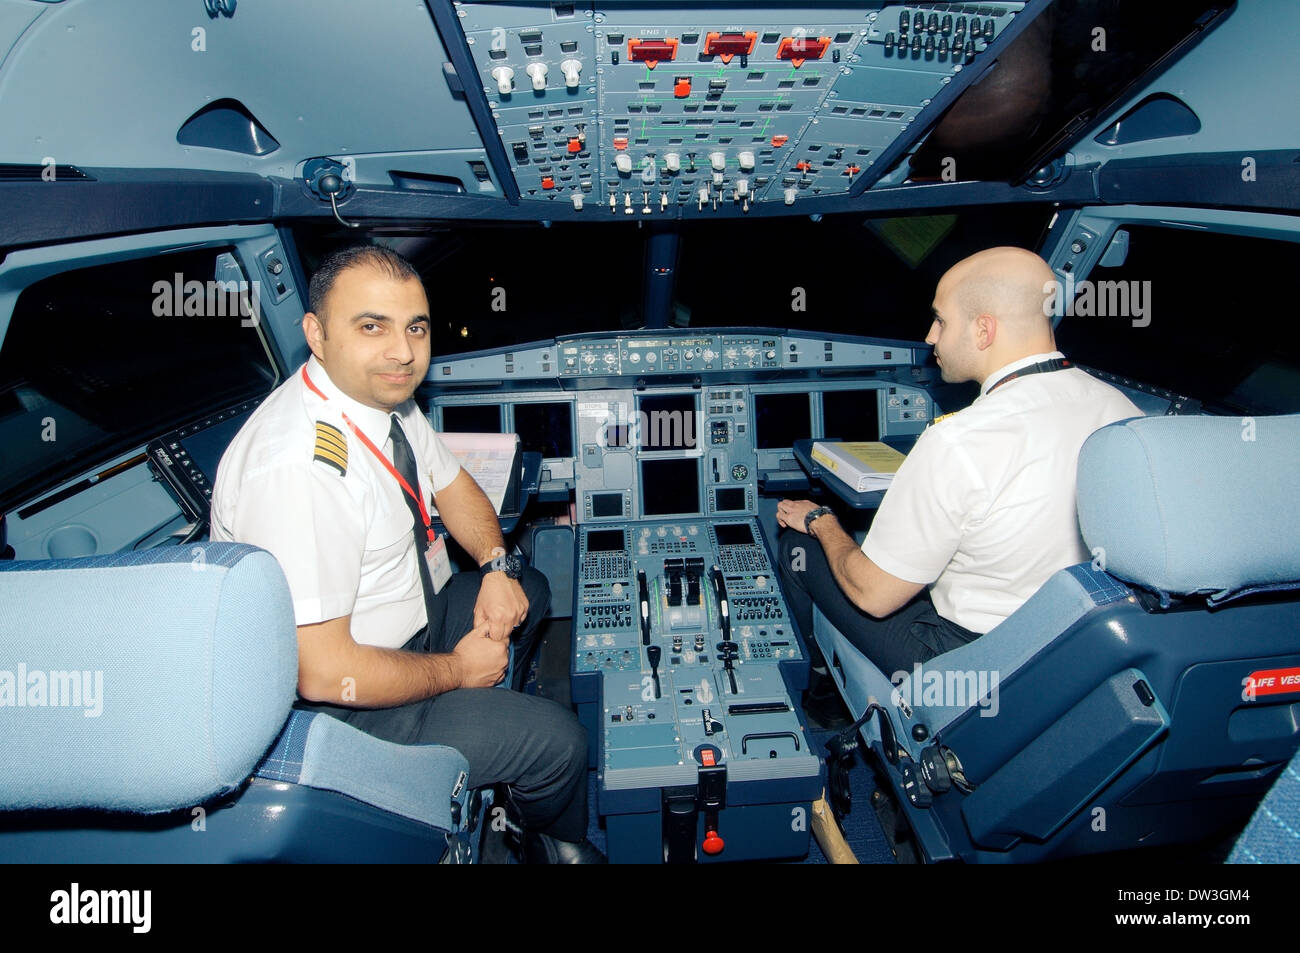 Pilots aircraft airbus a 320 in the cockpit airport sharjah sharjah emirate uae